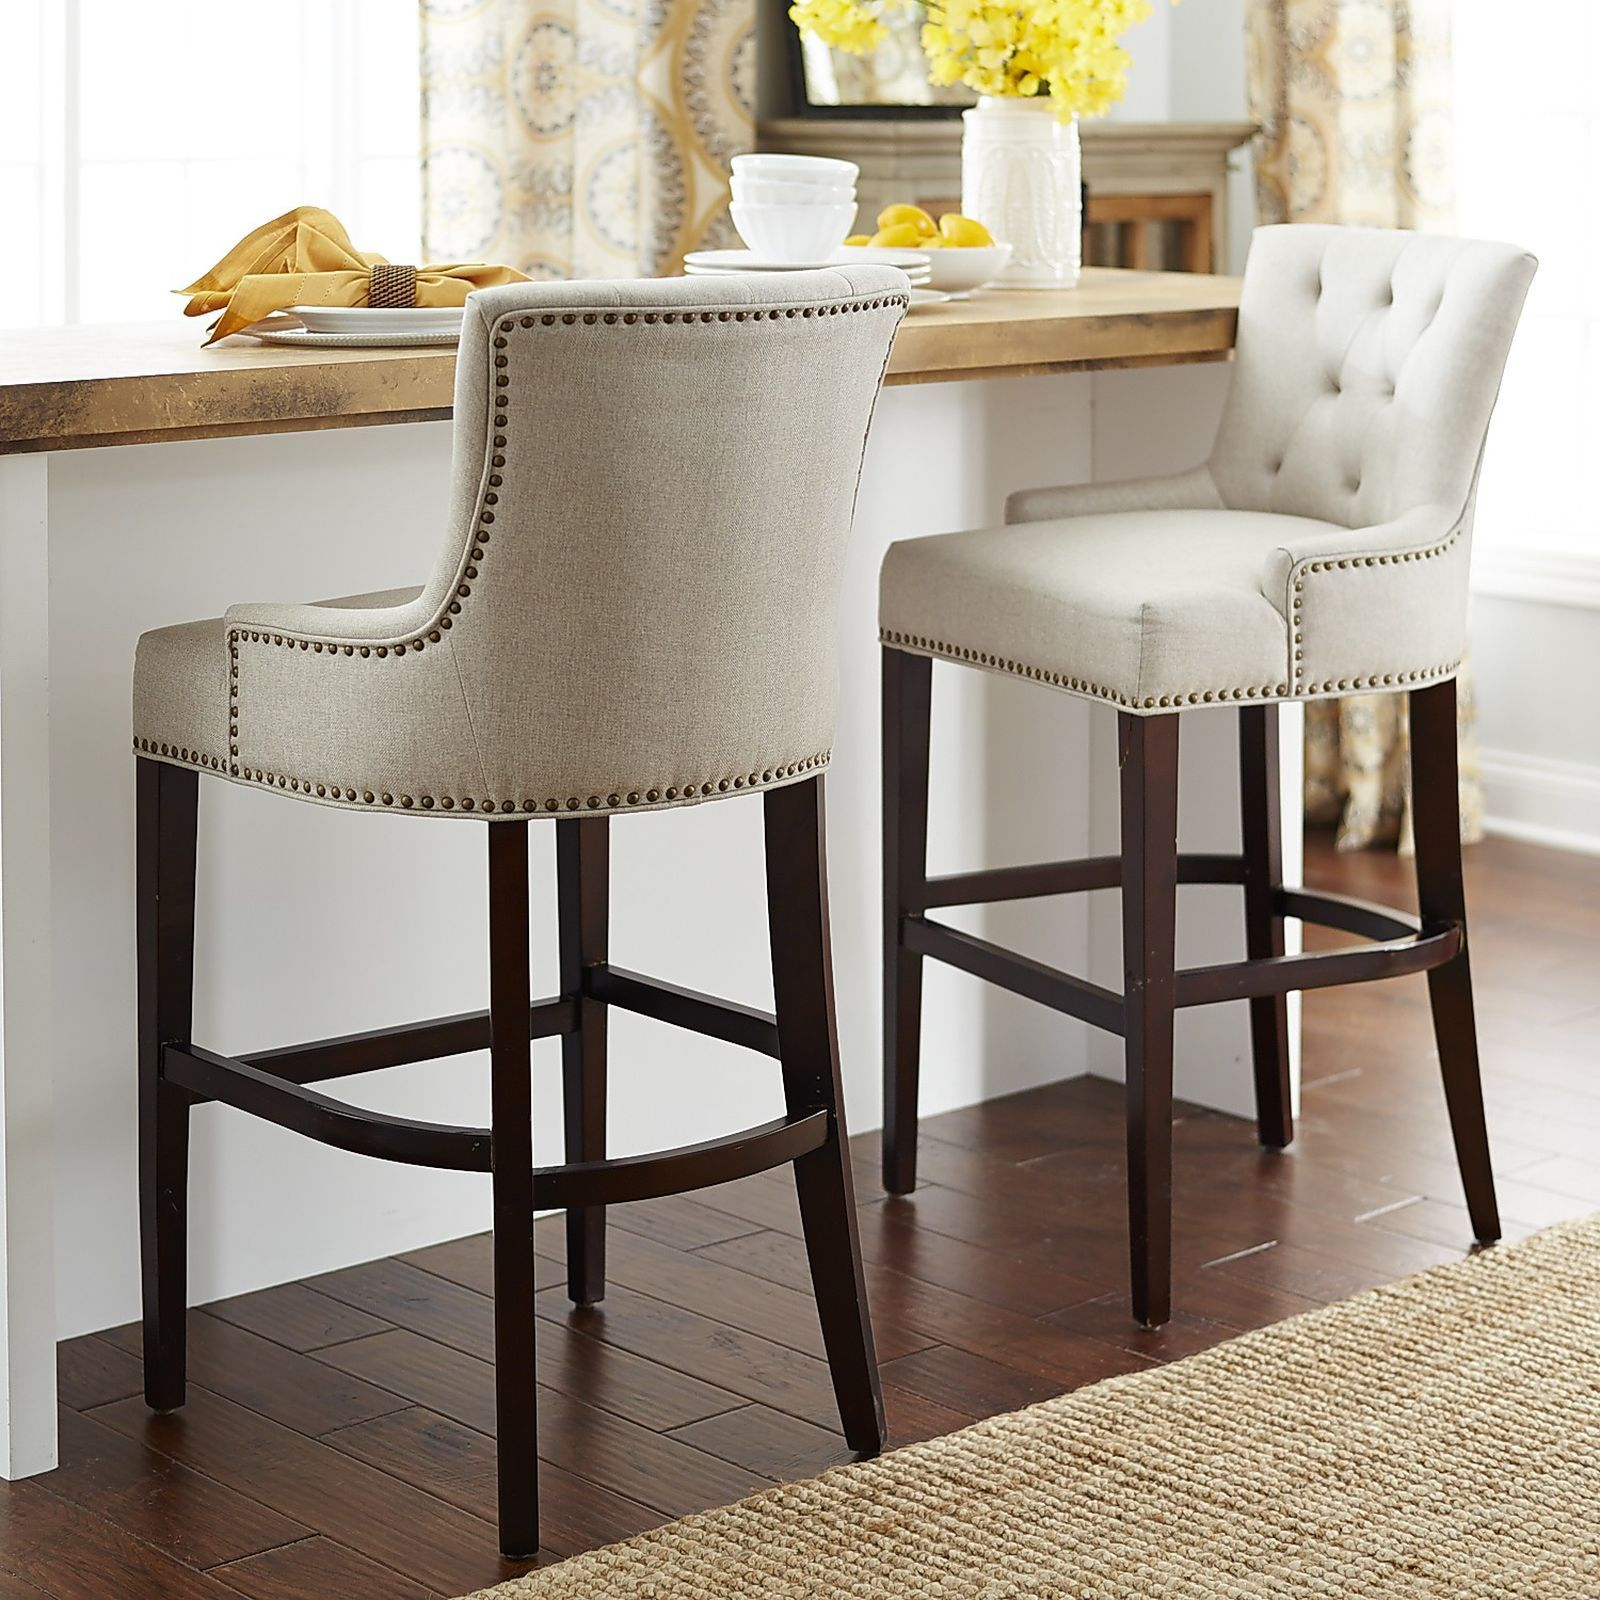 ava flax counter  bar stool  stools and bar stool - bar stool